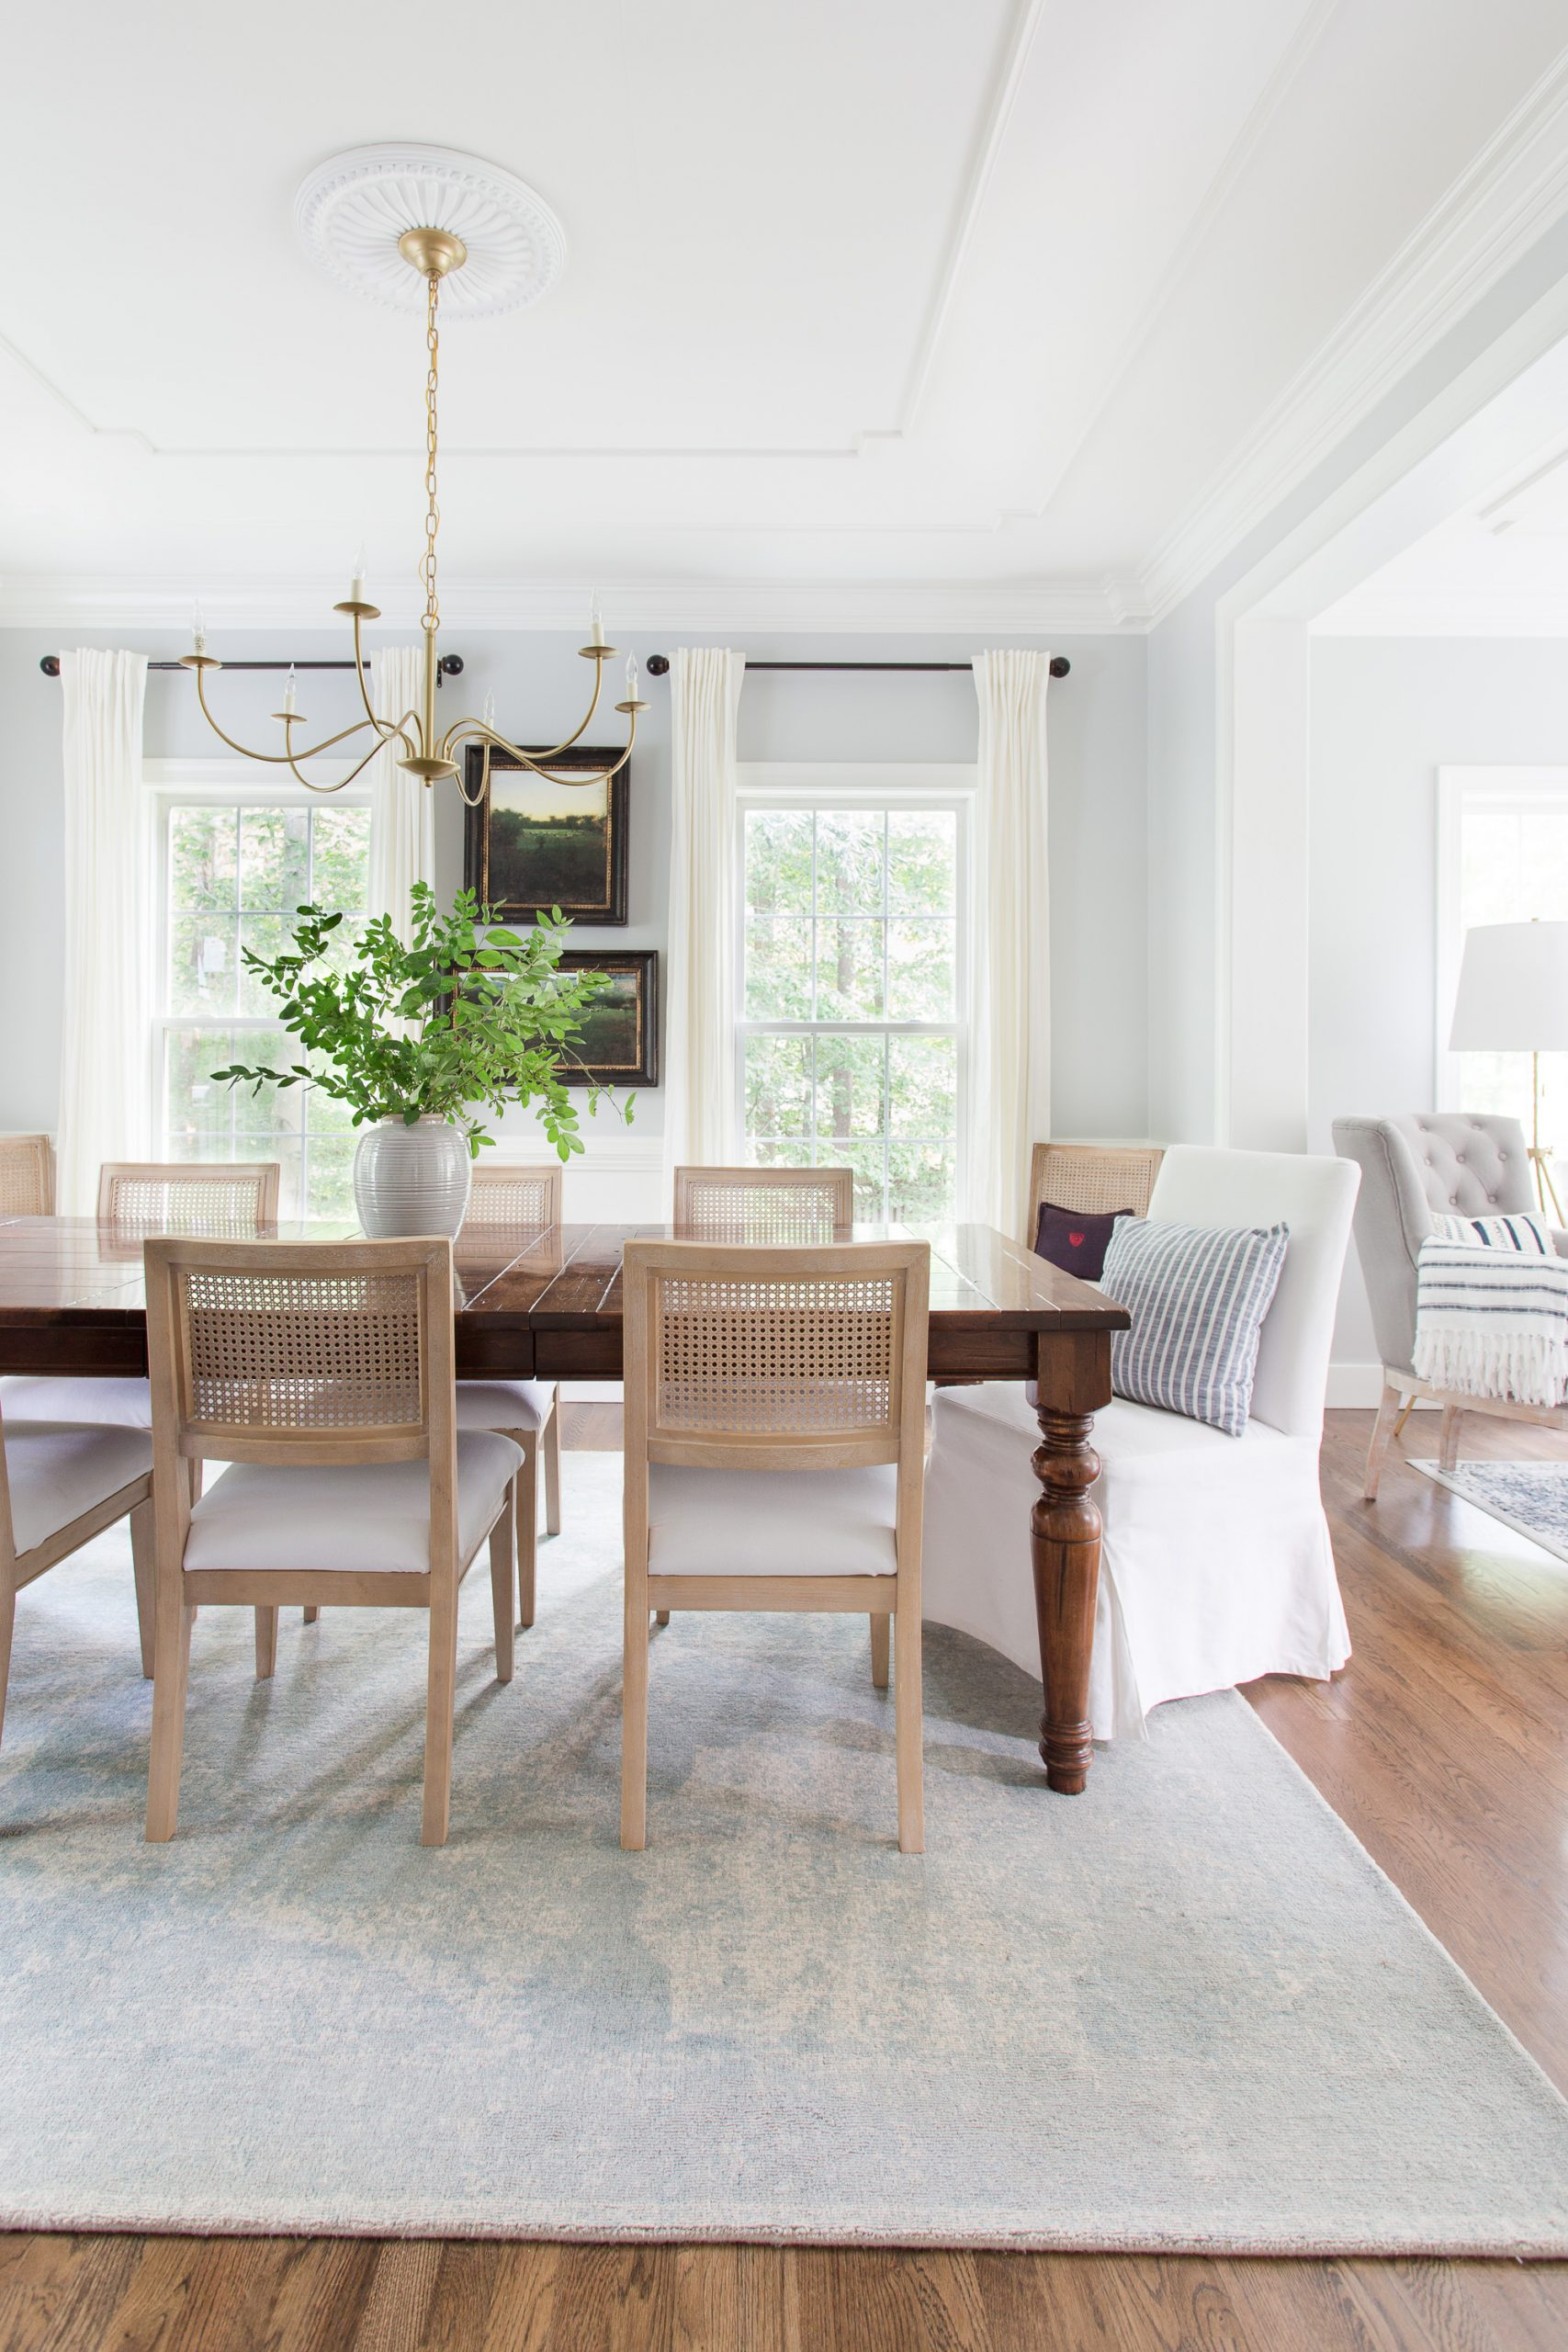 dining room with table, rug, cane chairs with a brass chandelier